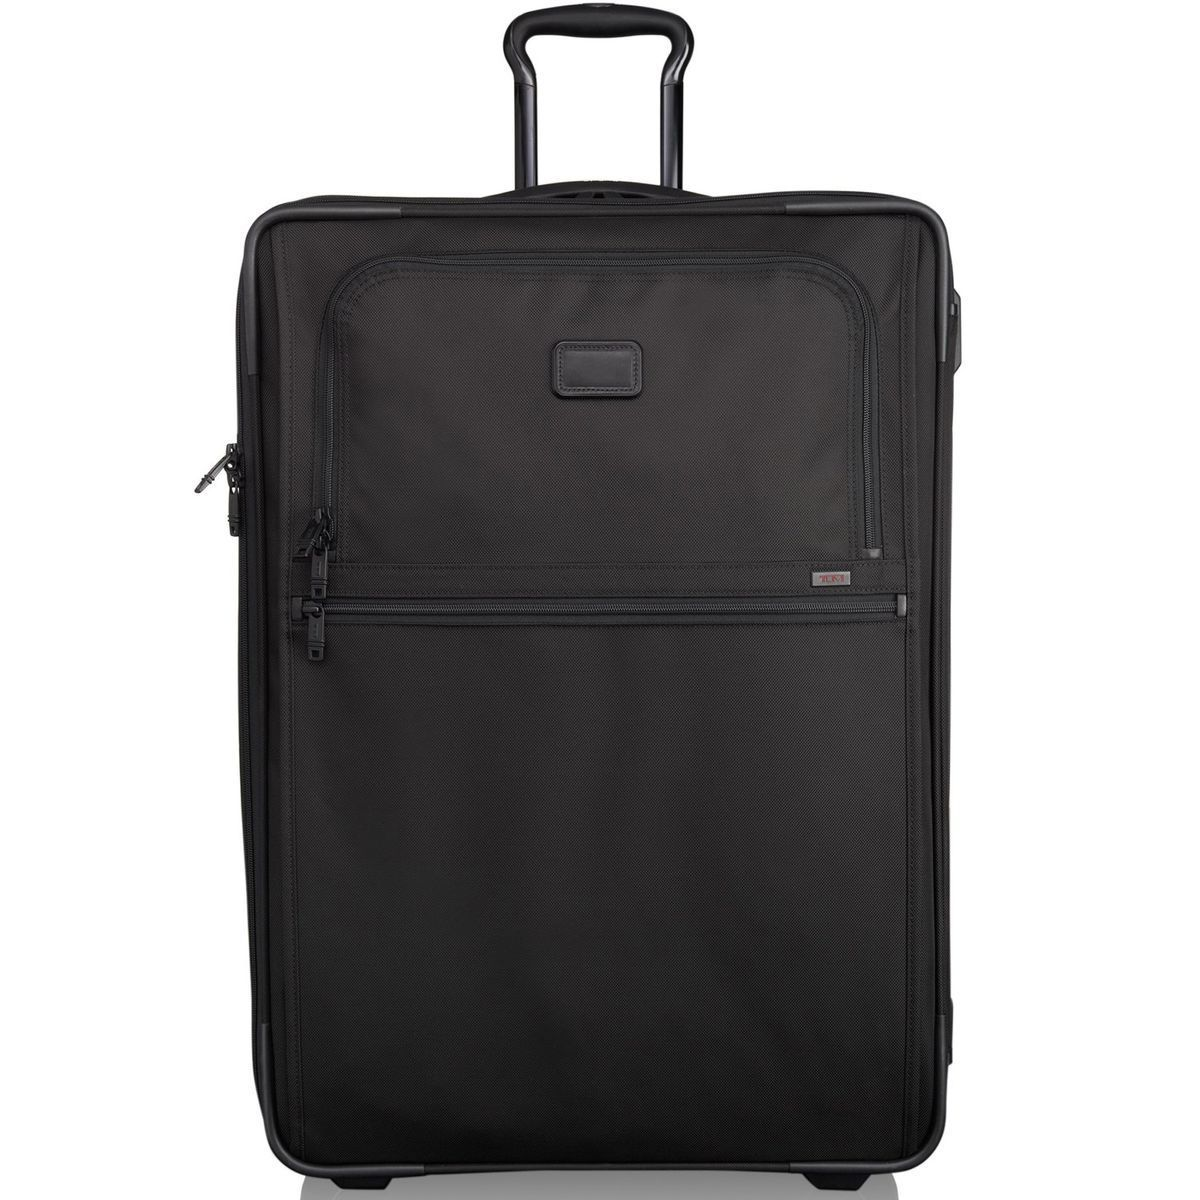 Tumi Alpha 2-Rollen Trolley 73cm, black2